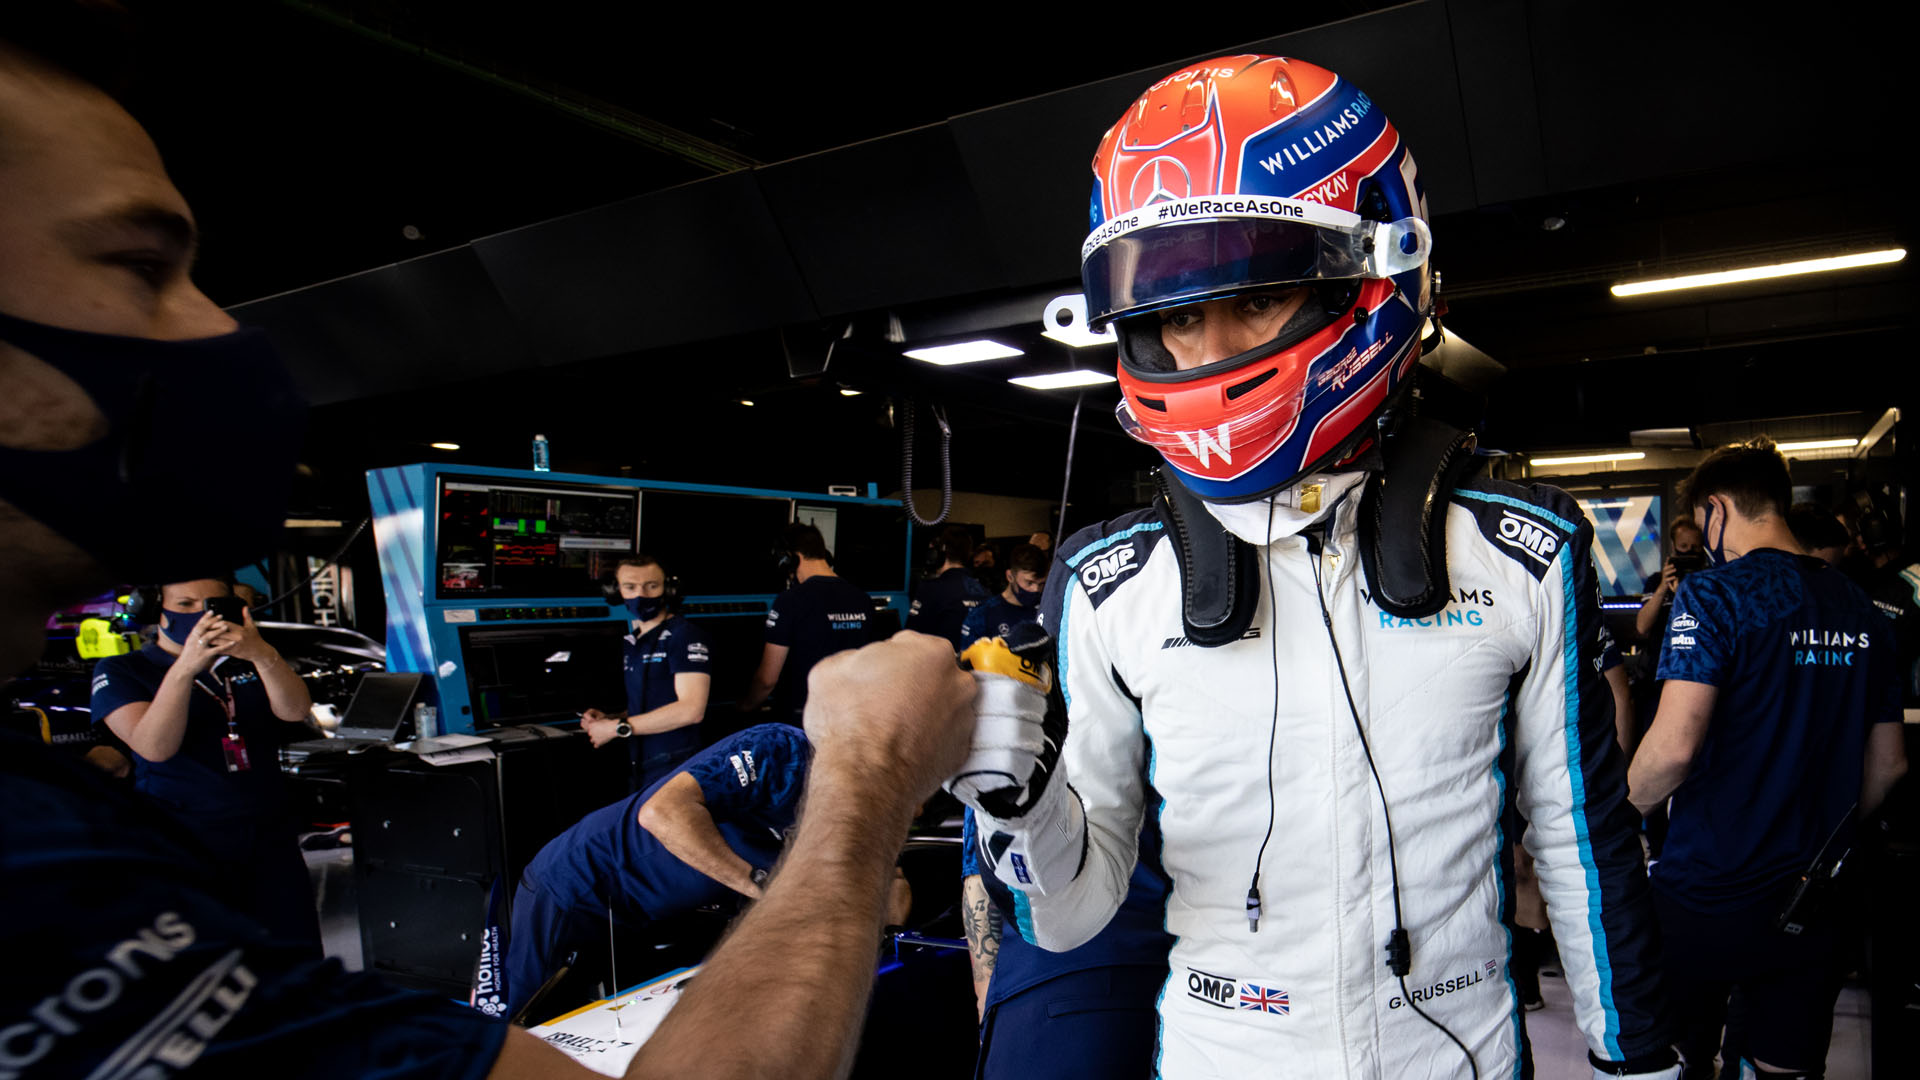 Russell found the Williams 'joyous to drive' in Barcelona as he commends team for rolling the dice on strategy | Formula 1®